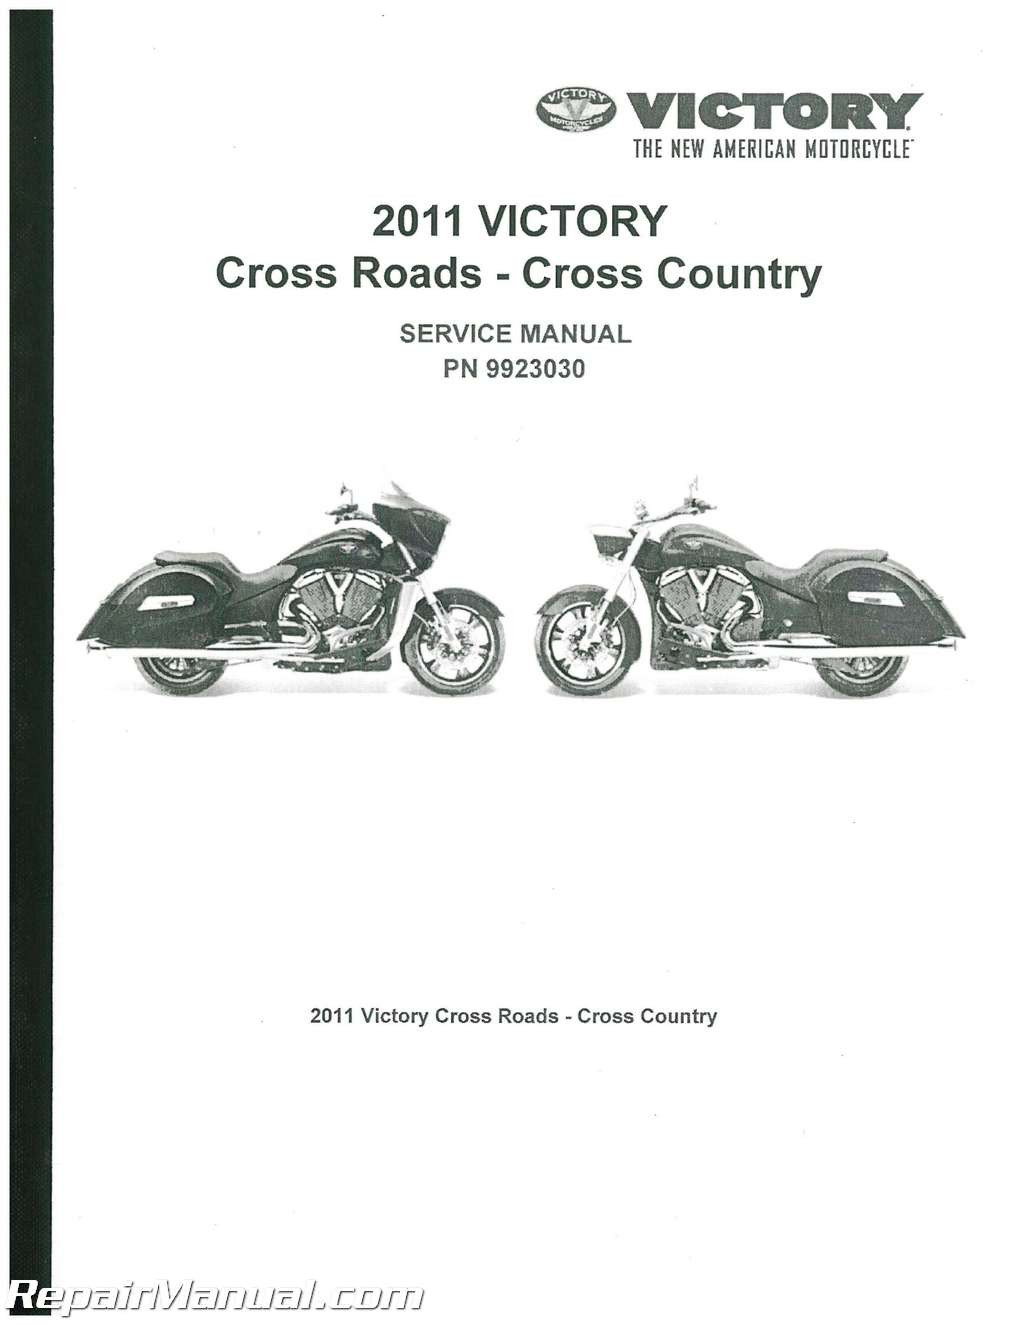 2011 Victory Cross Country And Cross Roads Service Manual